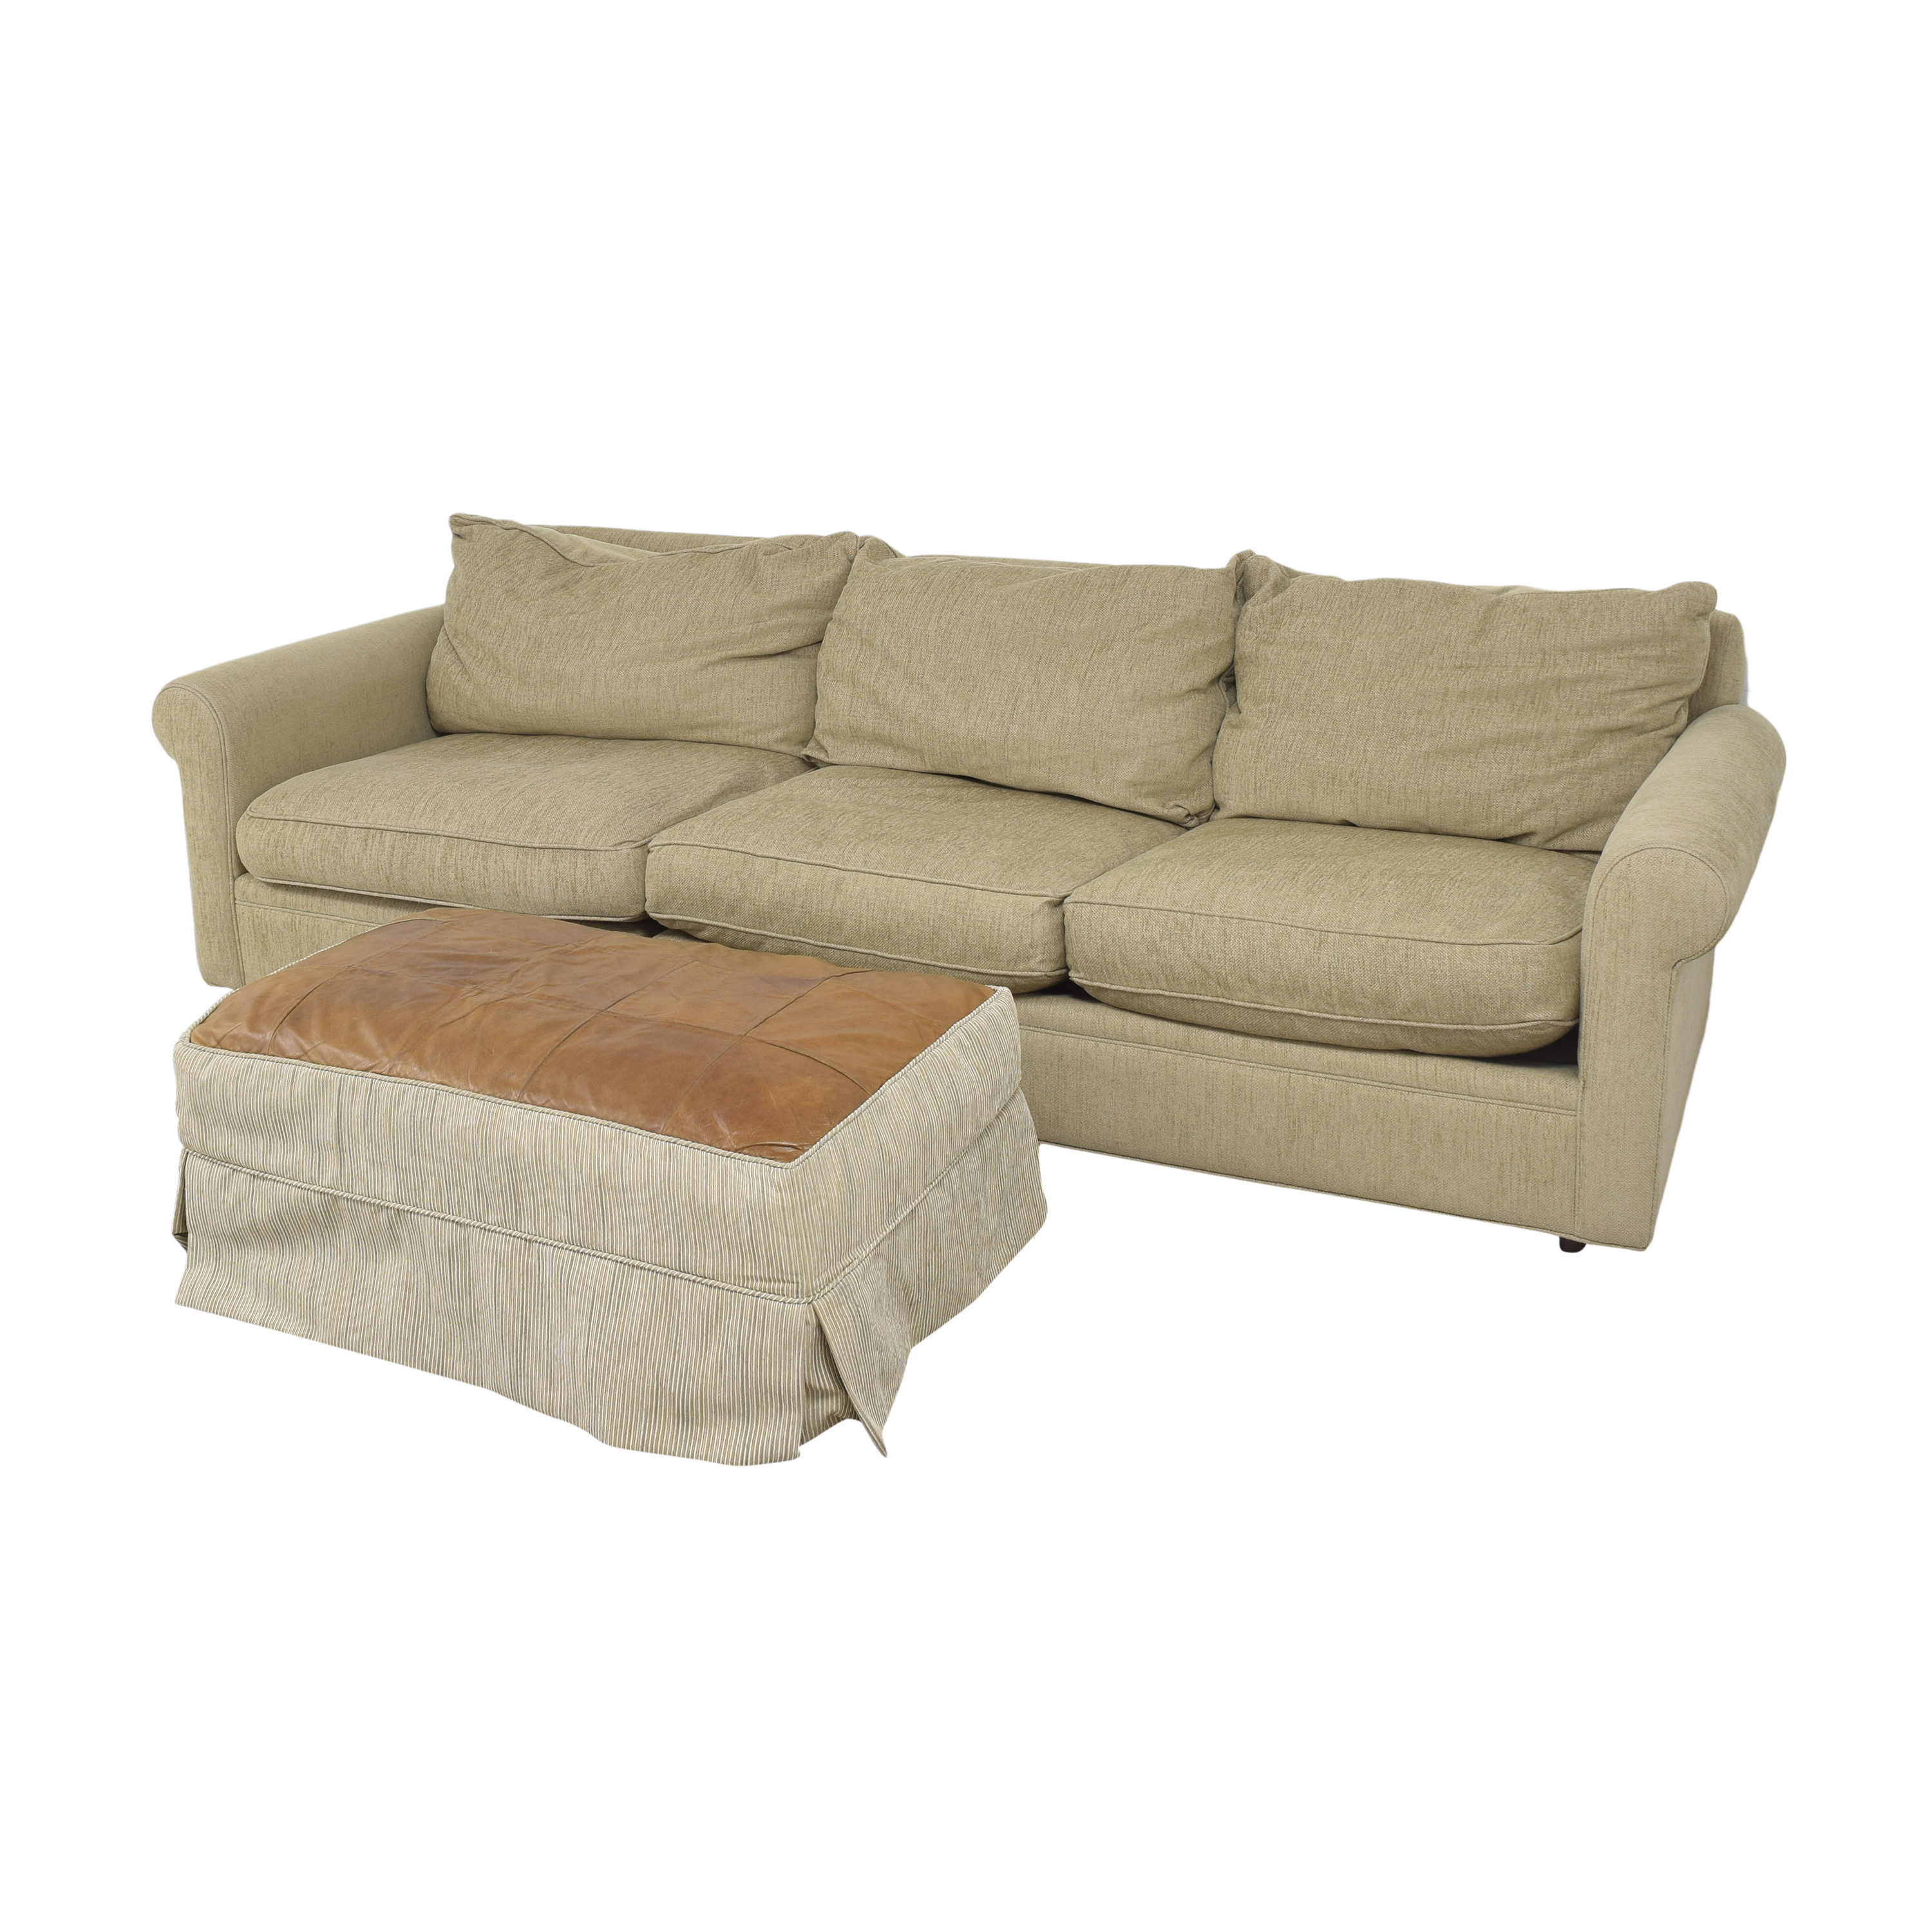 Macy's Macy's Modern Concepts Sofa with Ottoman for sale